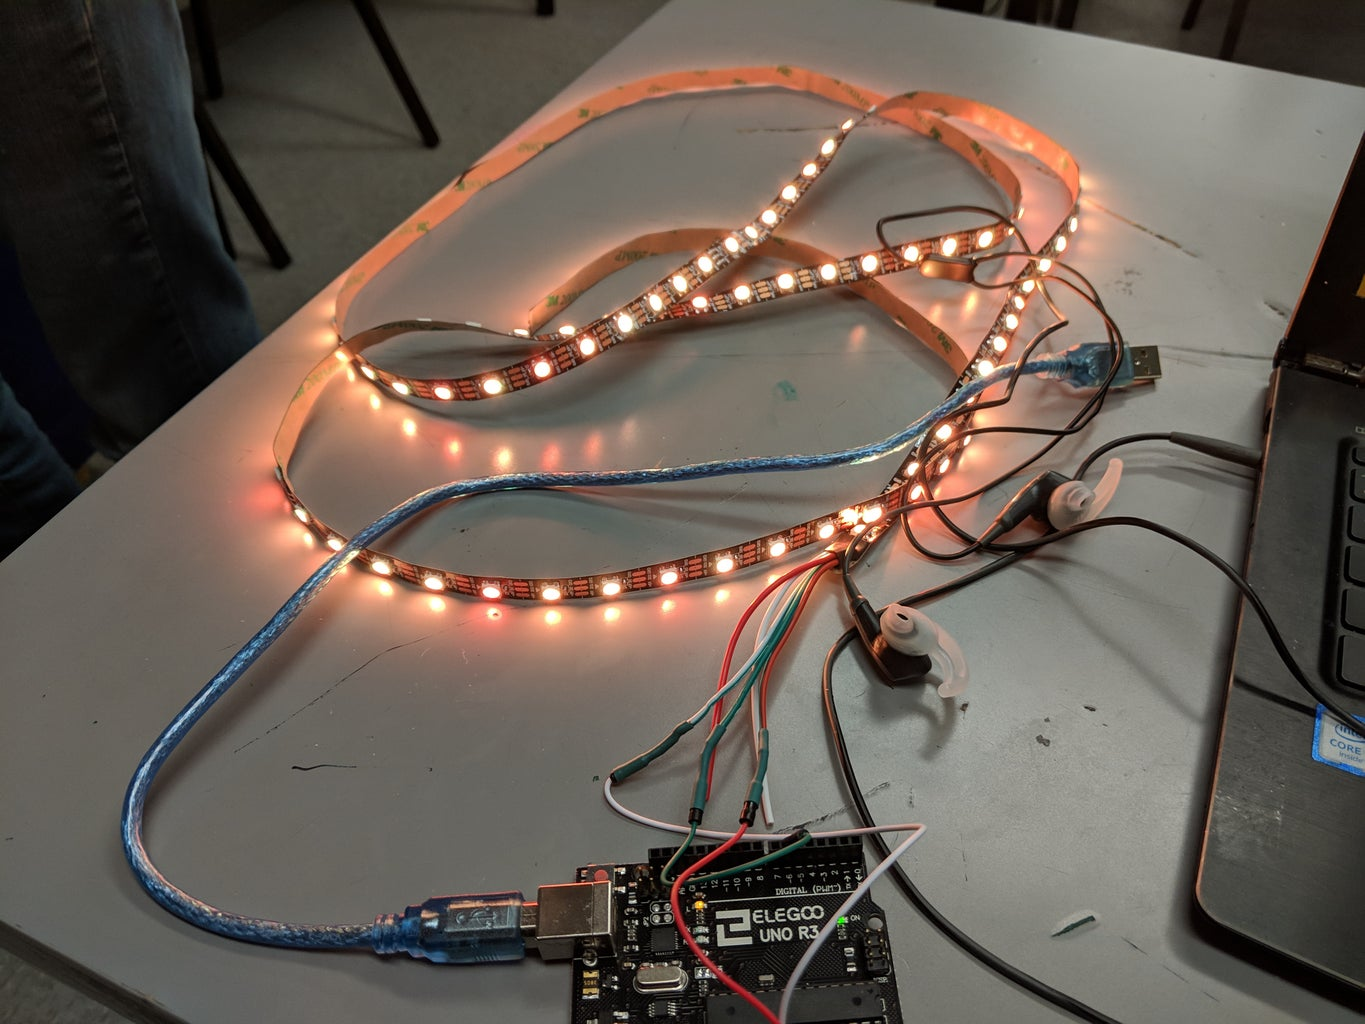 Coding the Neopixel Flame Effect